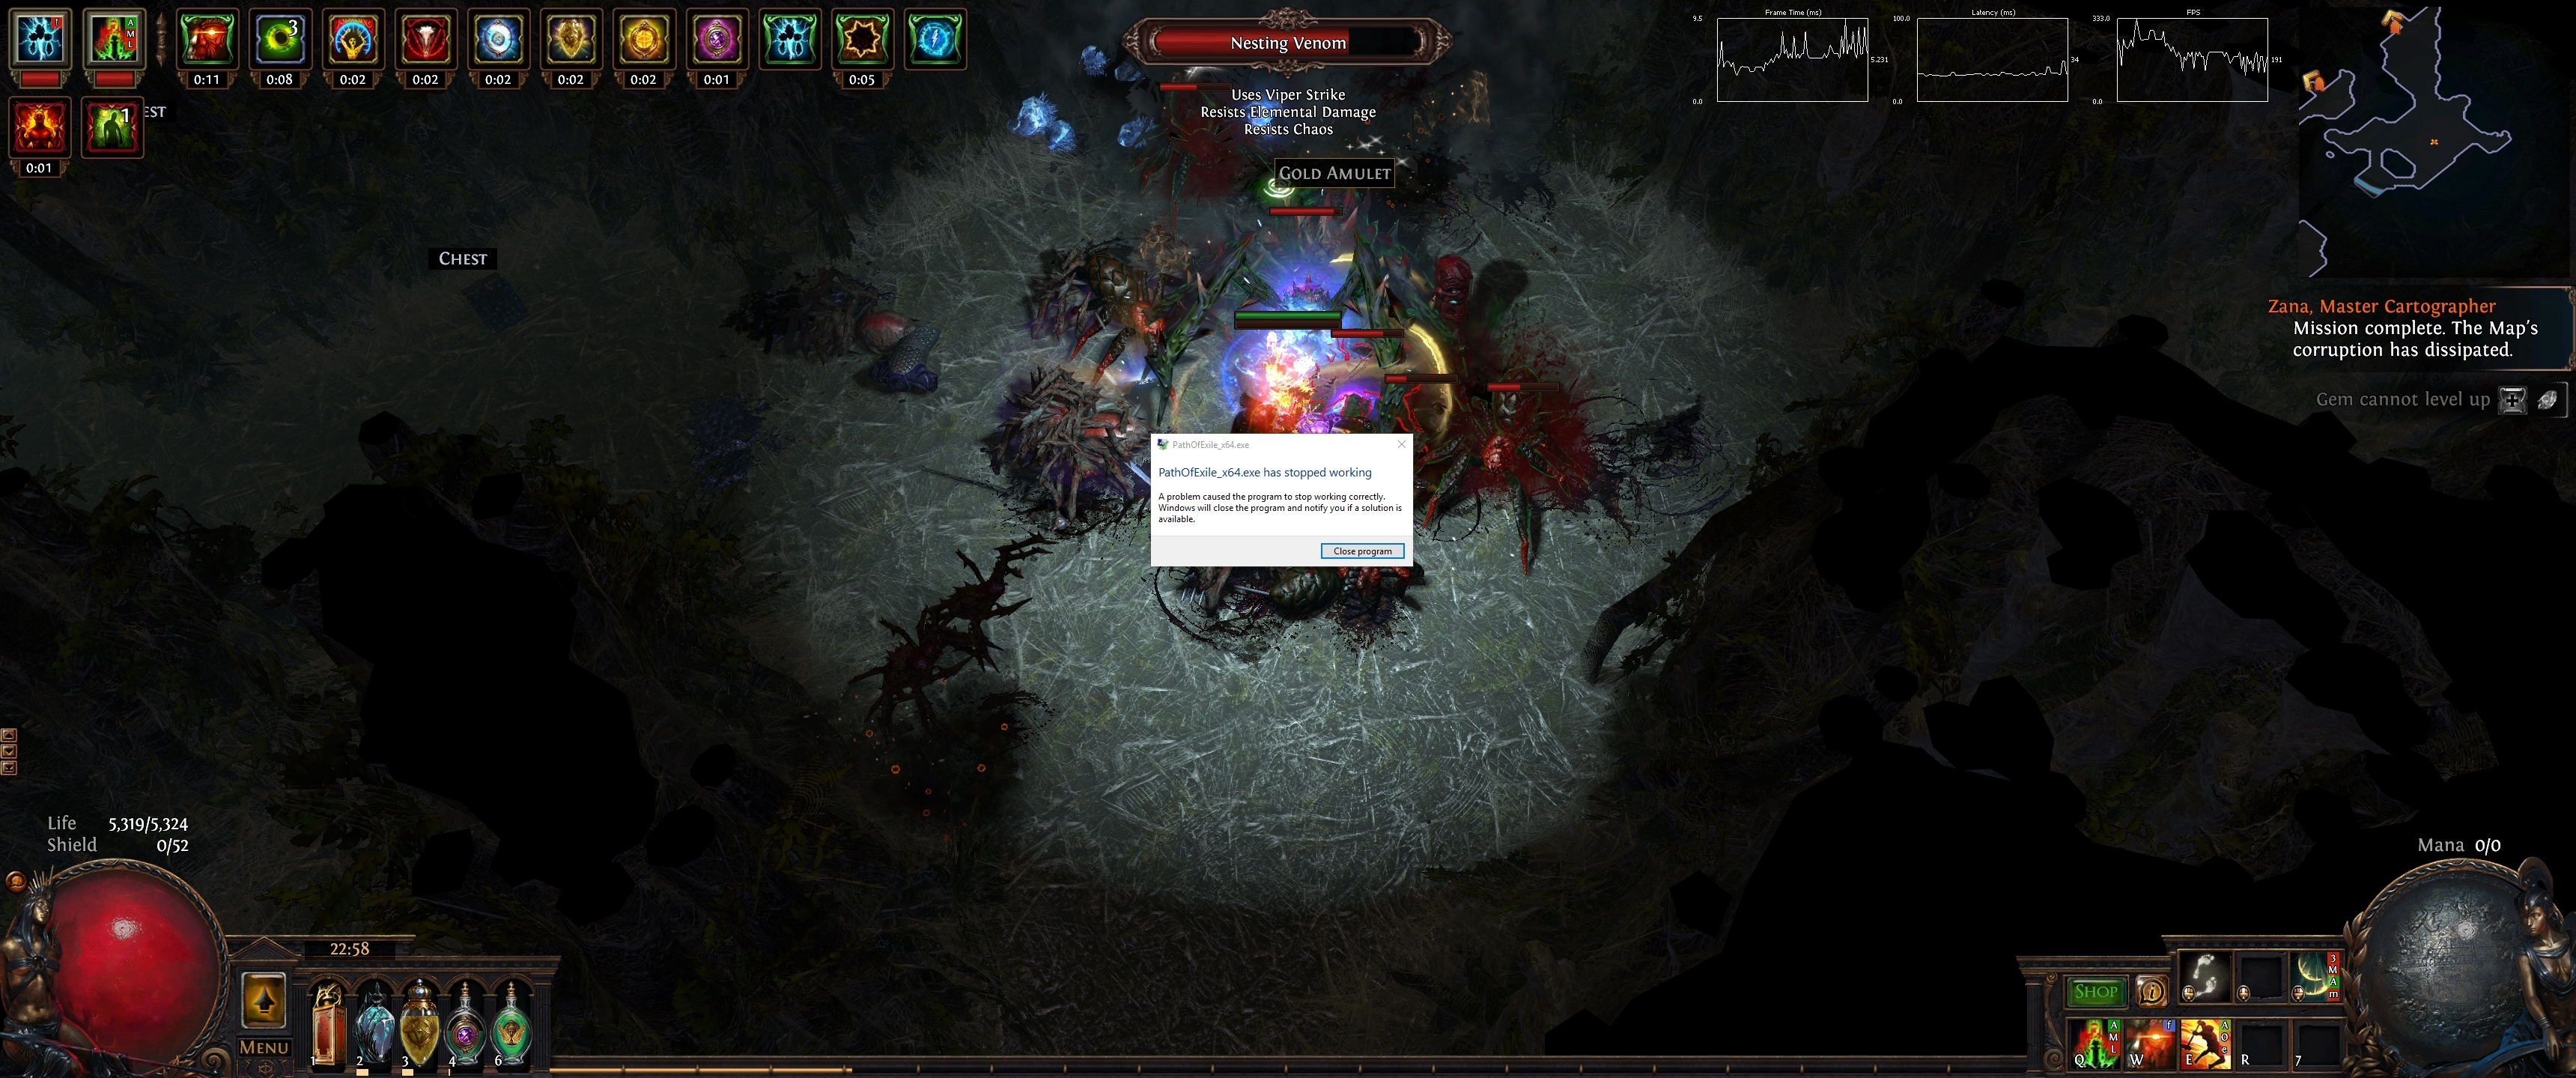 Forum - Technical Support - 64bit client crashing - Path of Exile